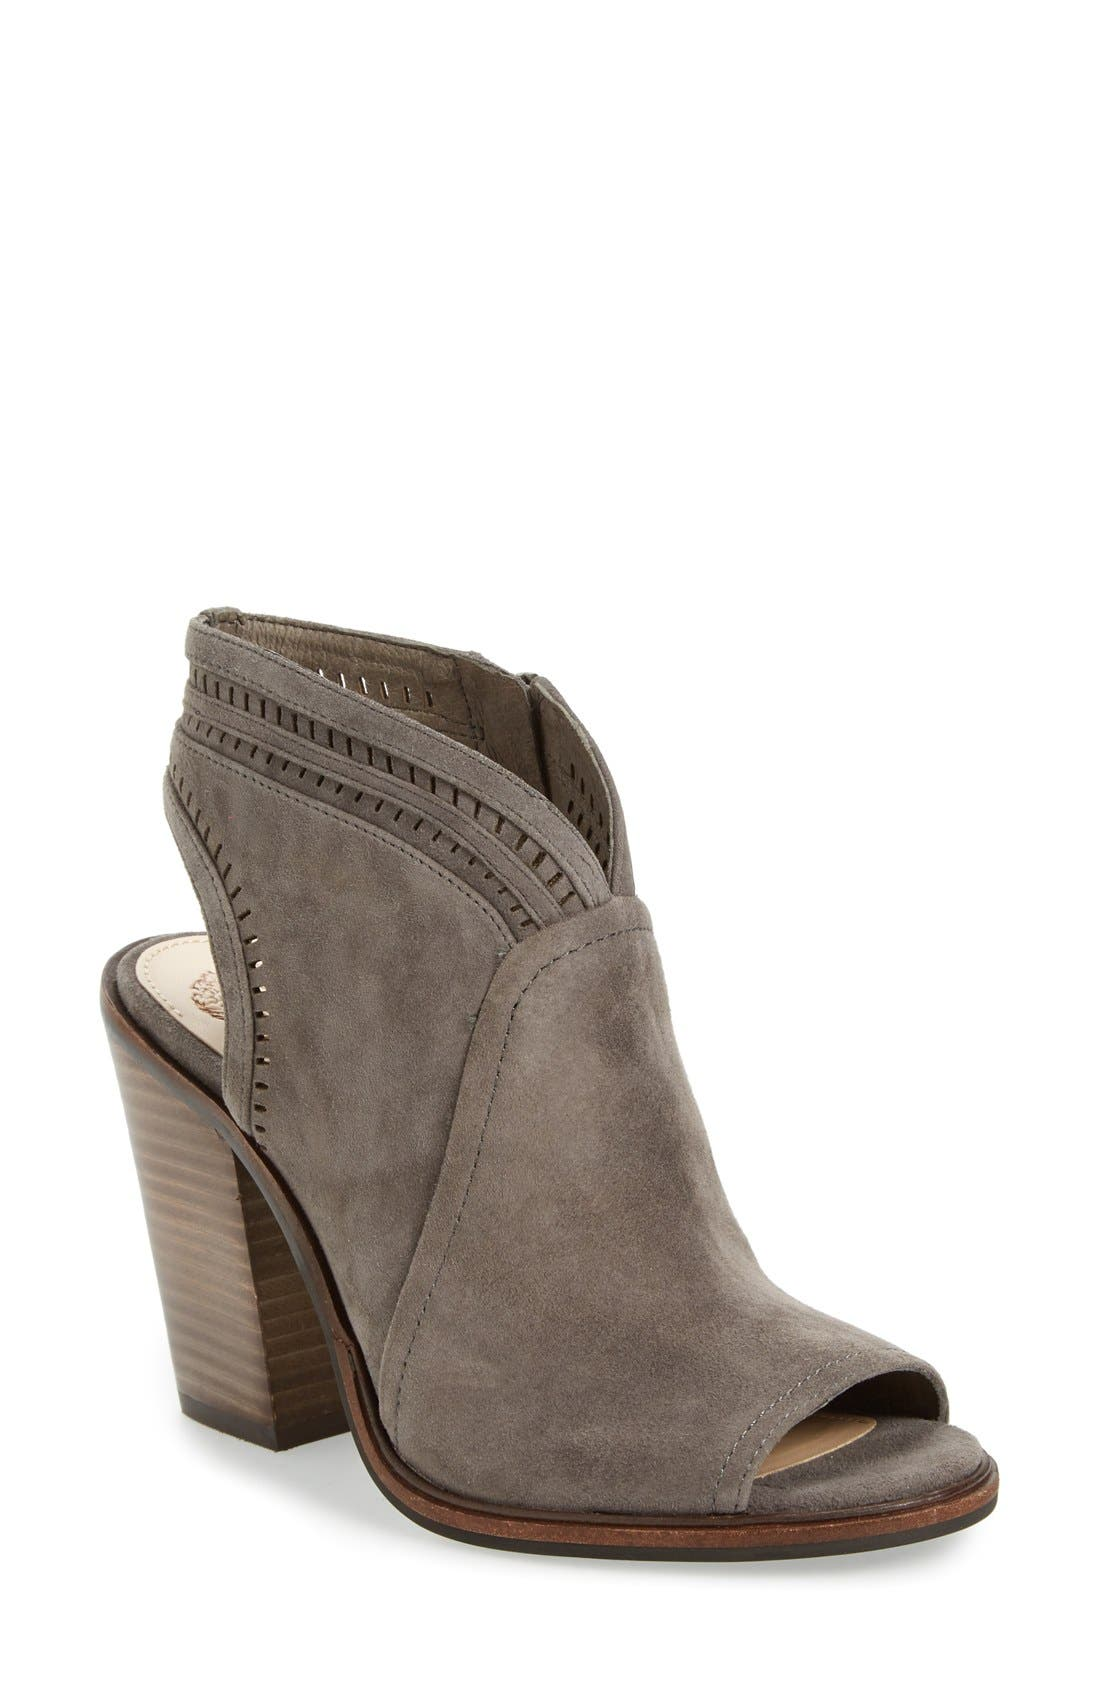 Main Image - Vince Camuto 'Koral' Perforated Open Toe Bootie (Women) (Nordstrom Exclusive)